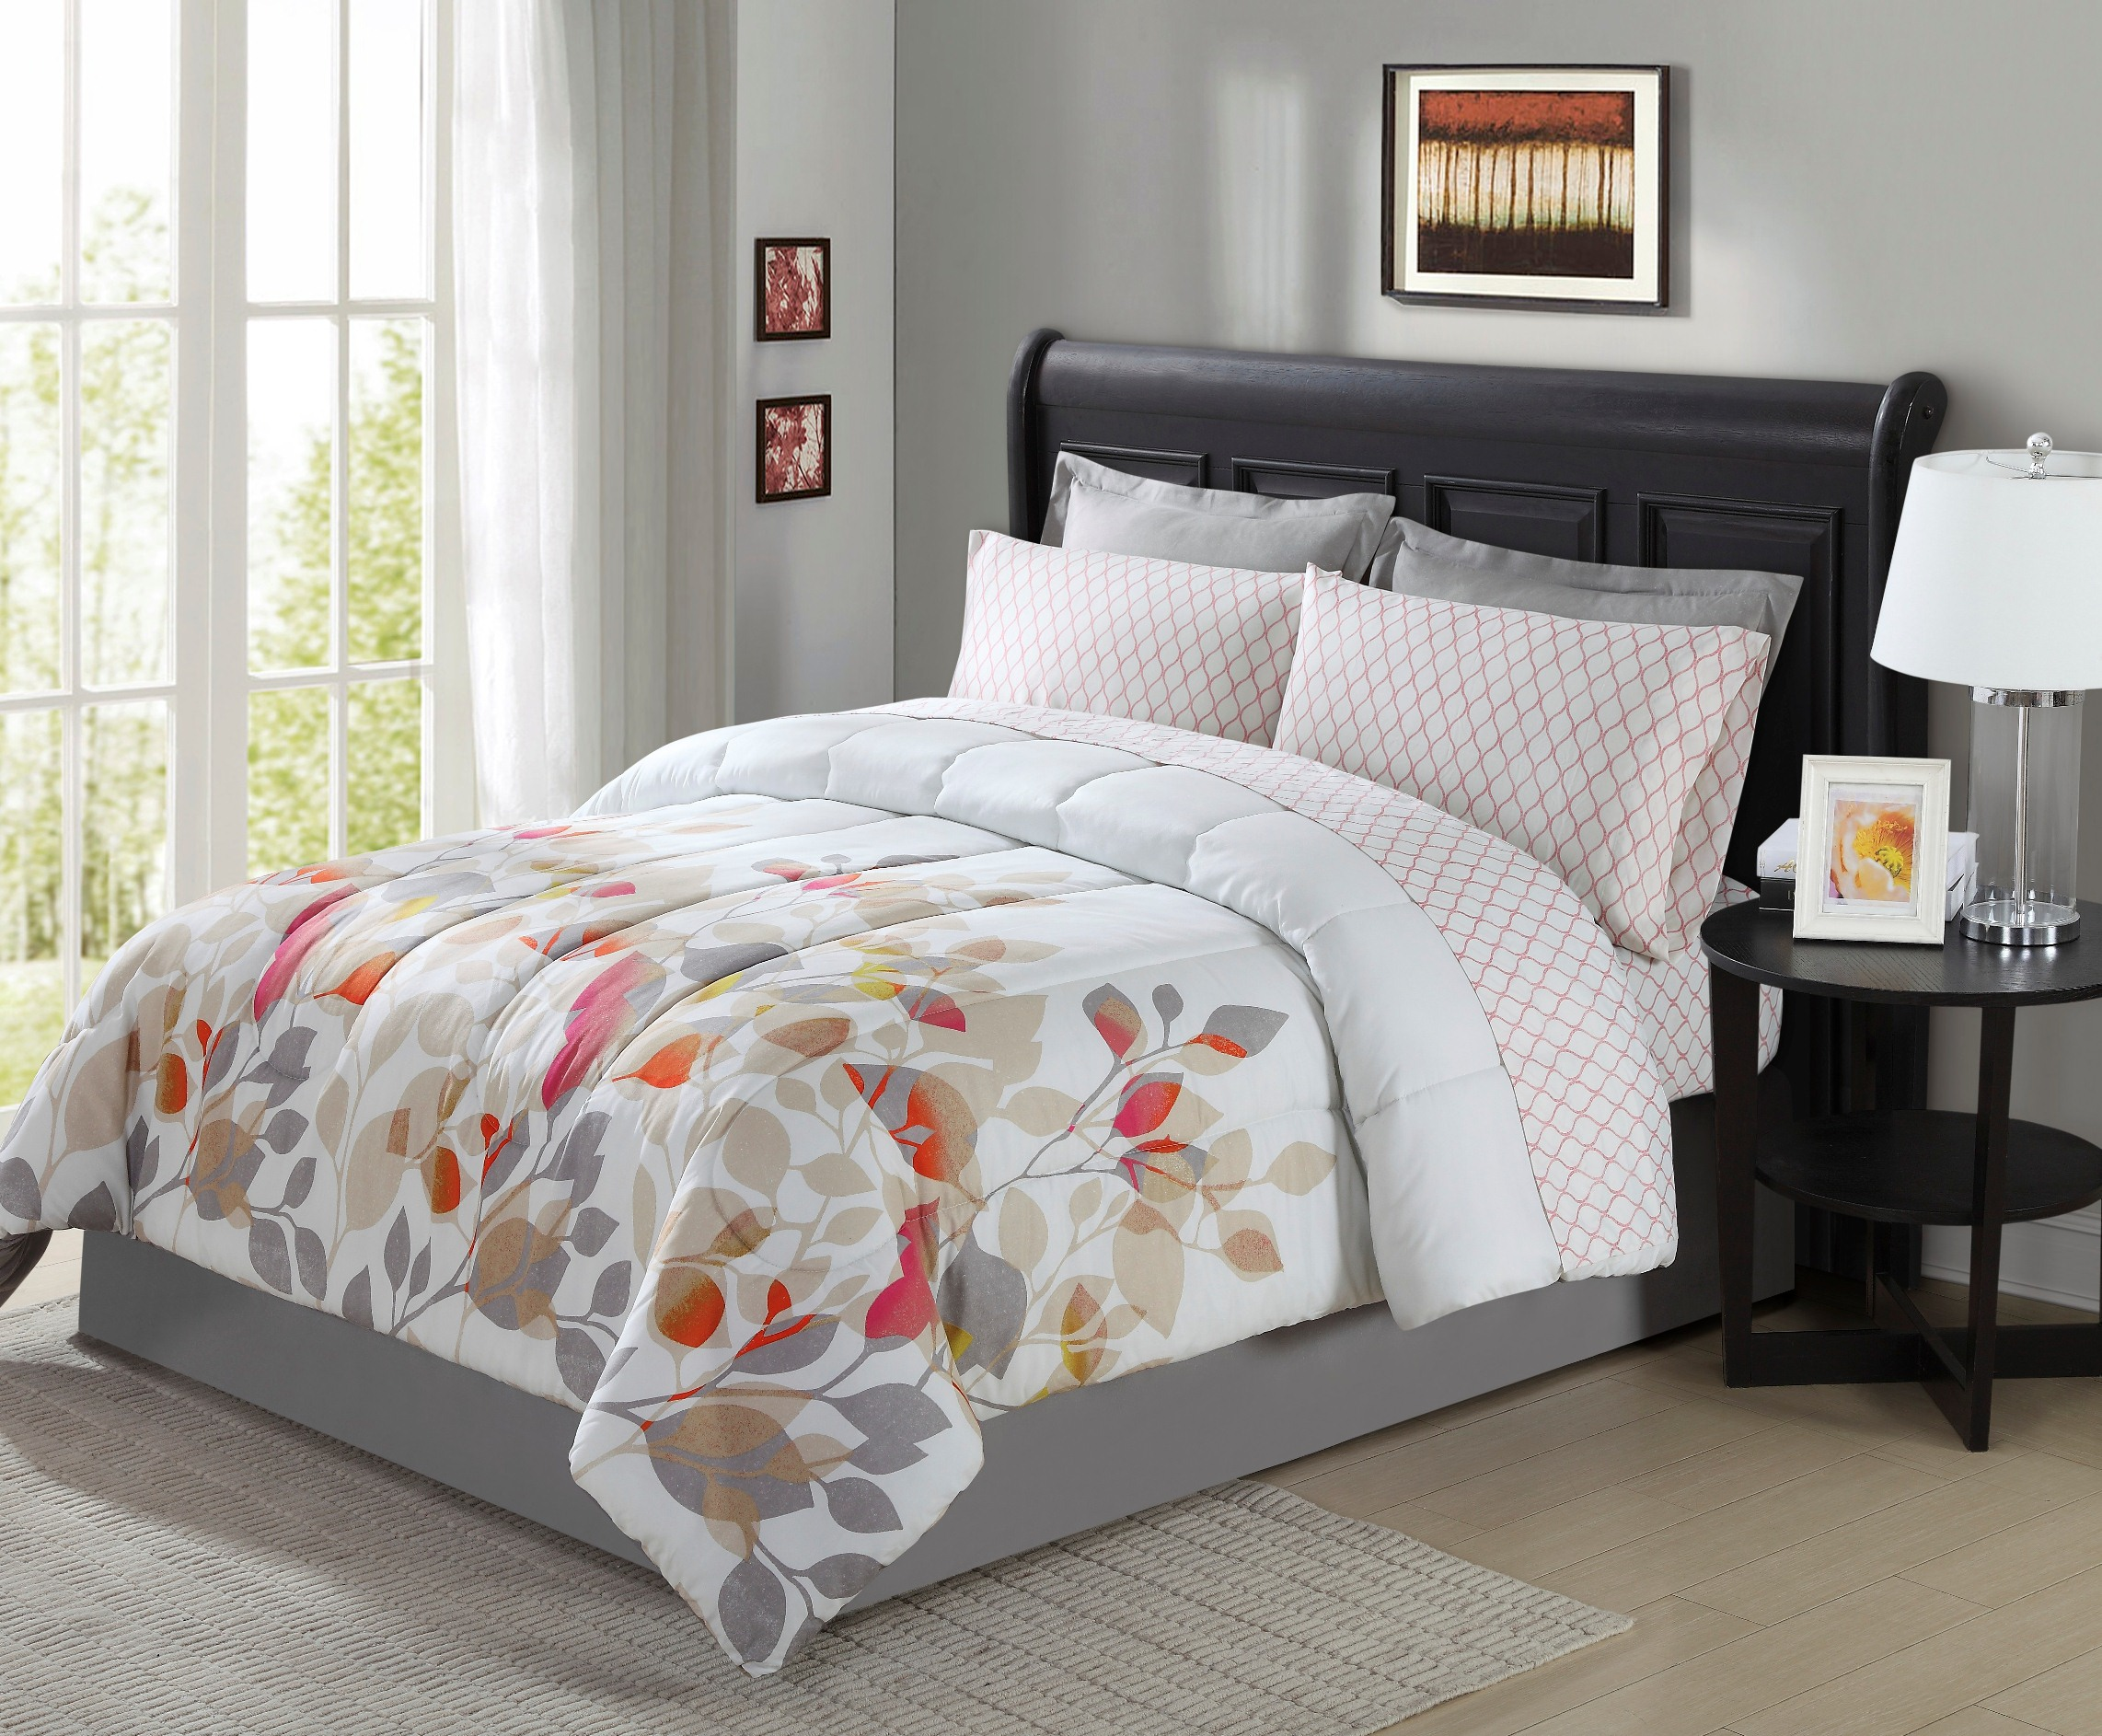 medallion gray sunrise and teal bedding crest home comforter overfilled grey set king pc pin oversized